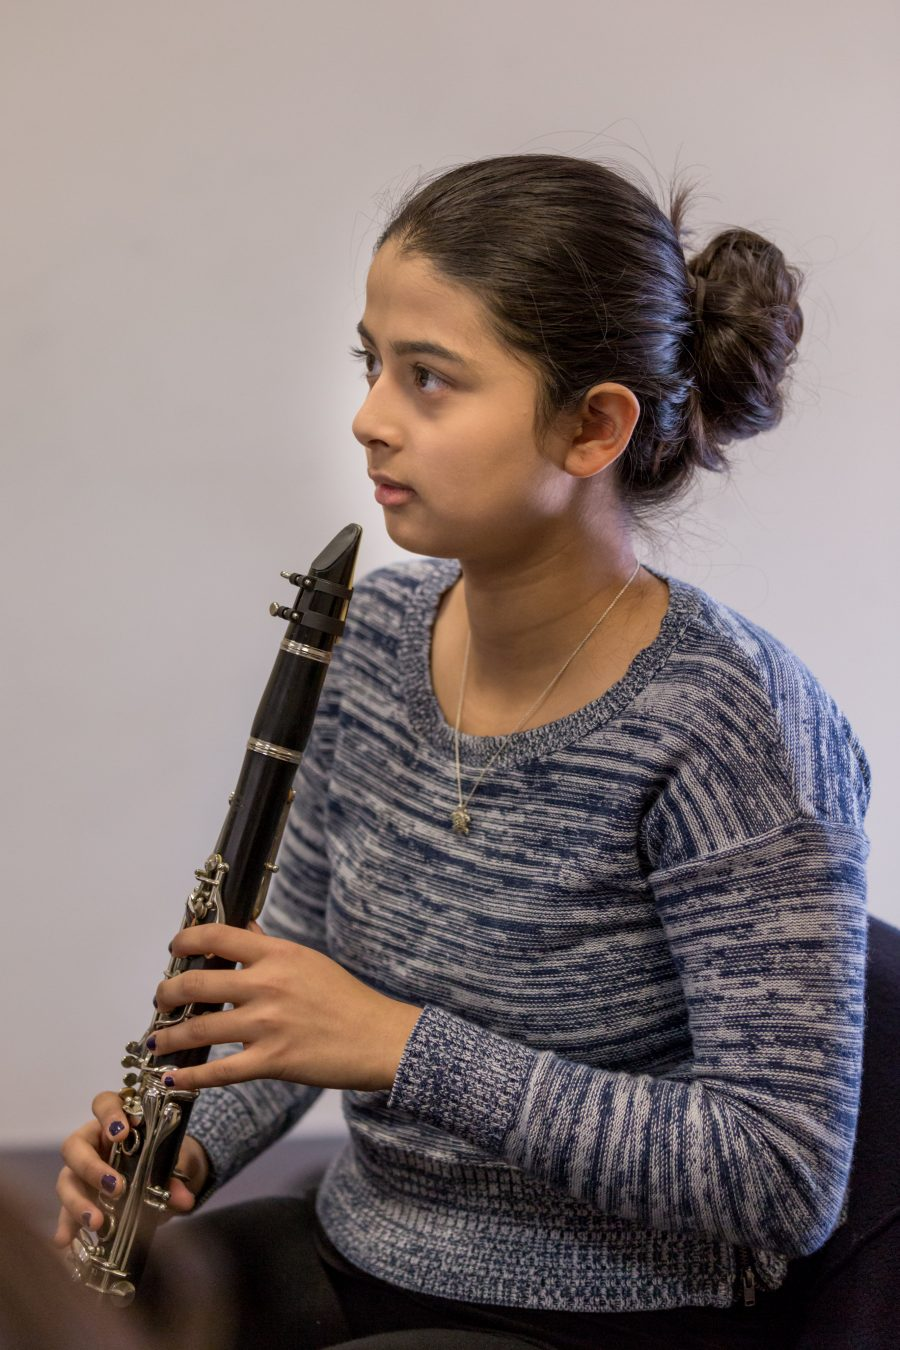 Settlement student plays the clarinet